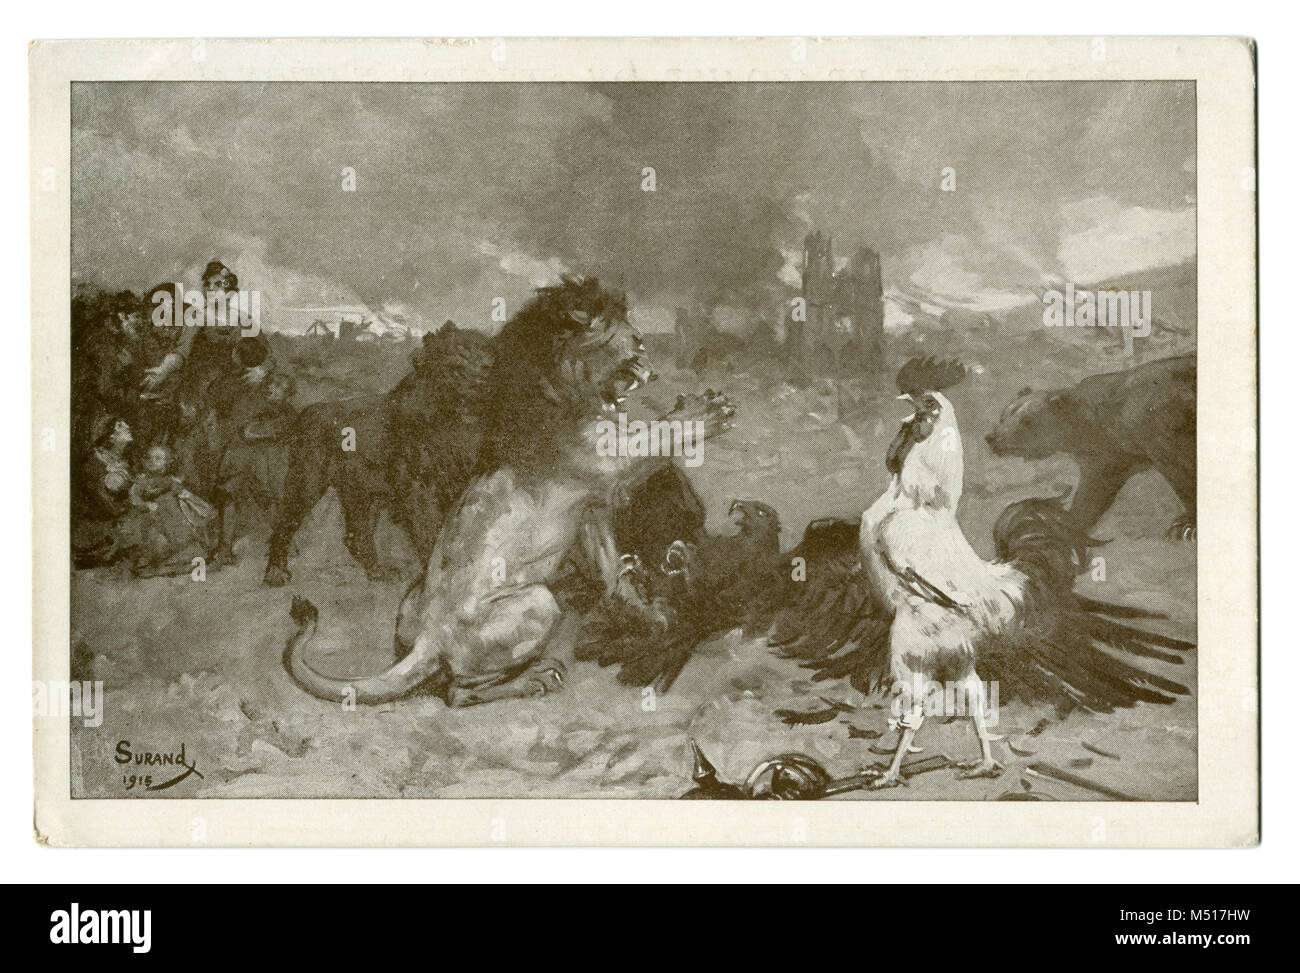 Old French postcard: Symbolism: The Union of the Entente: England (lion), France (rooster), Russia (bear) and Belgium - Stock Image